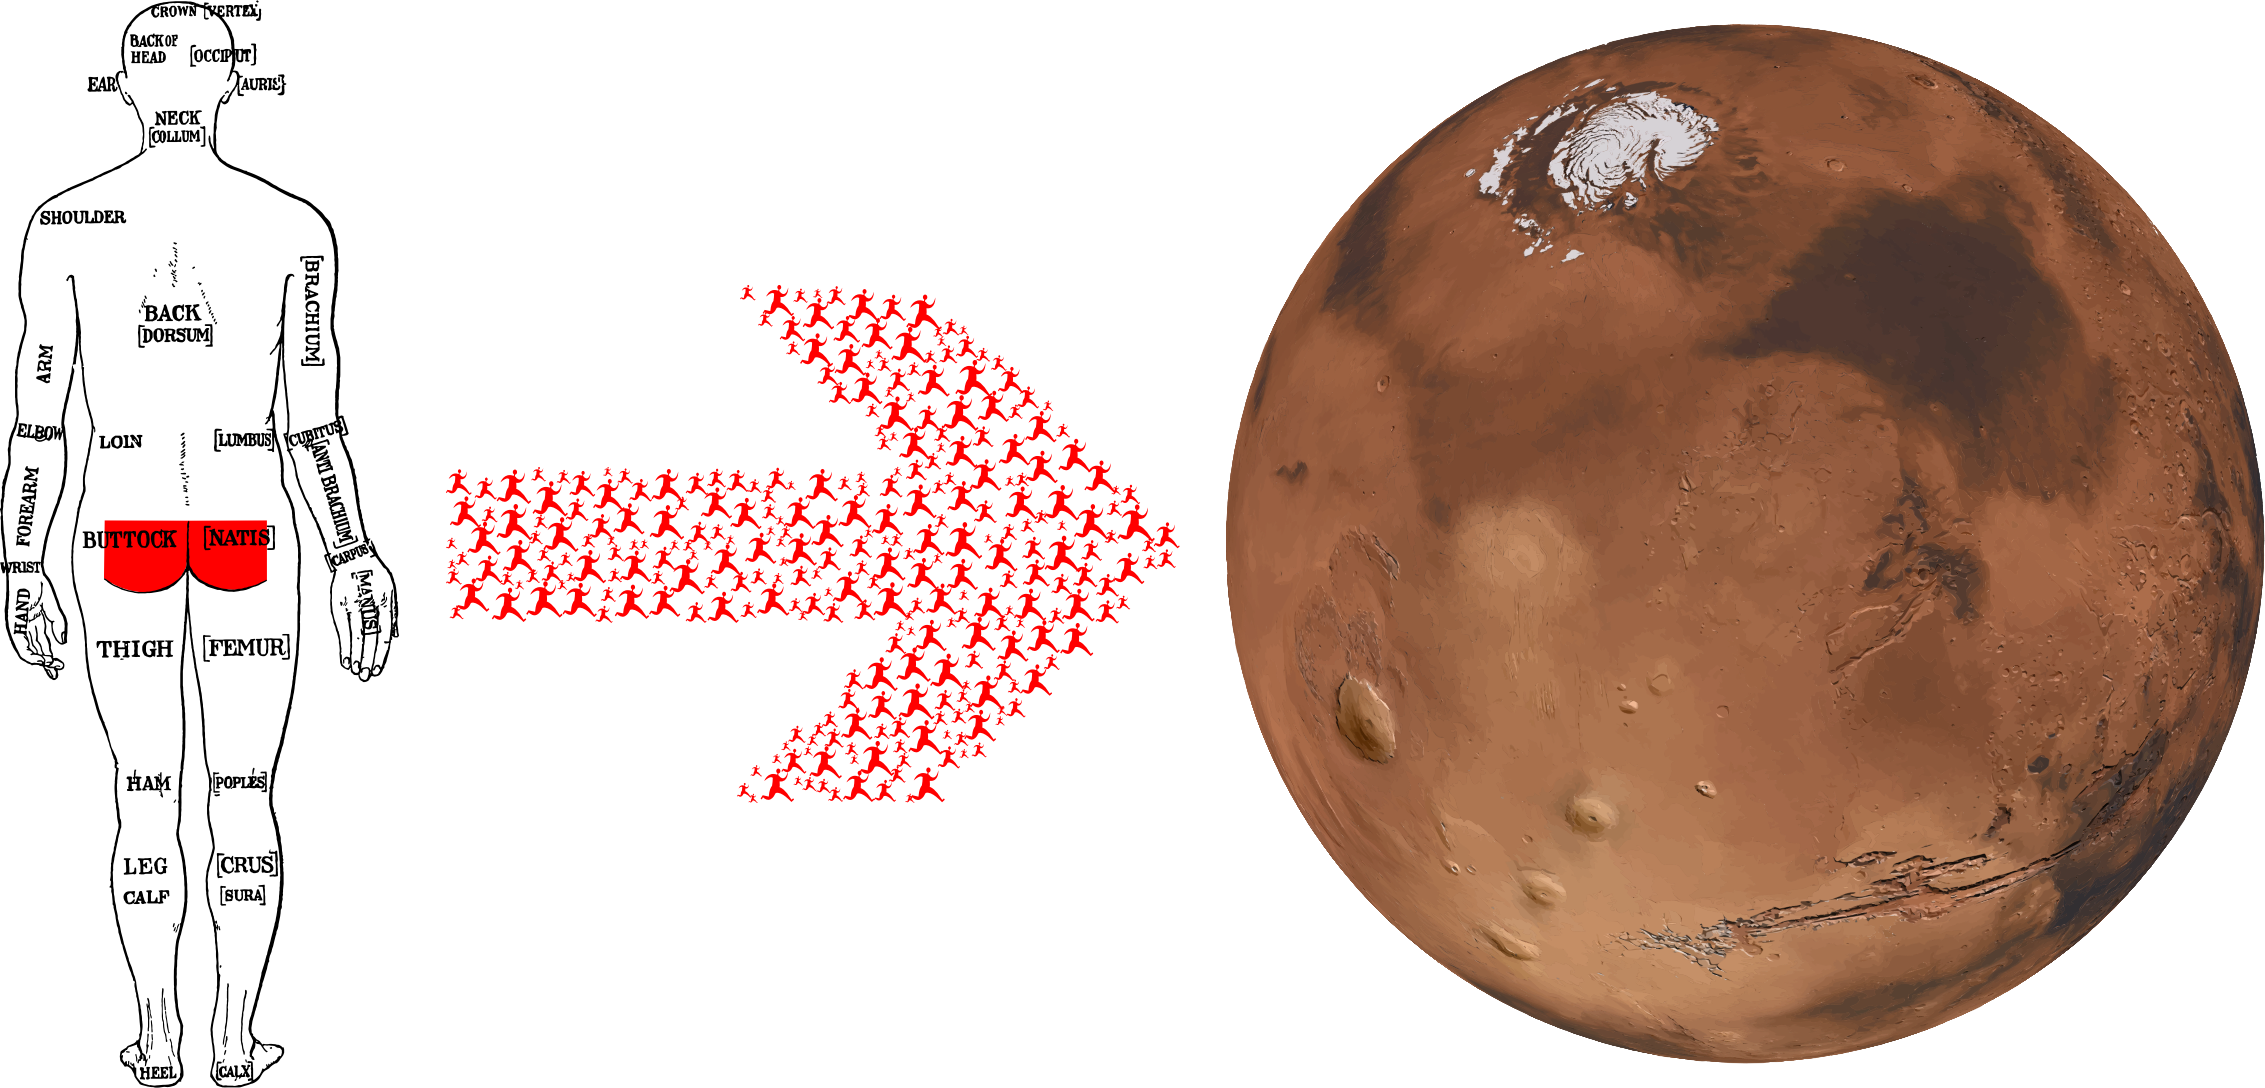 Mars clipart icon. Get your gluteus to